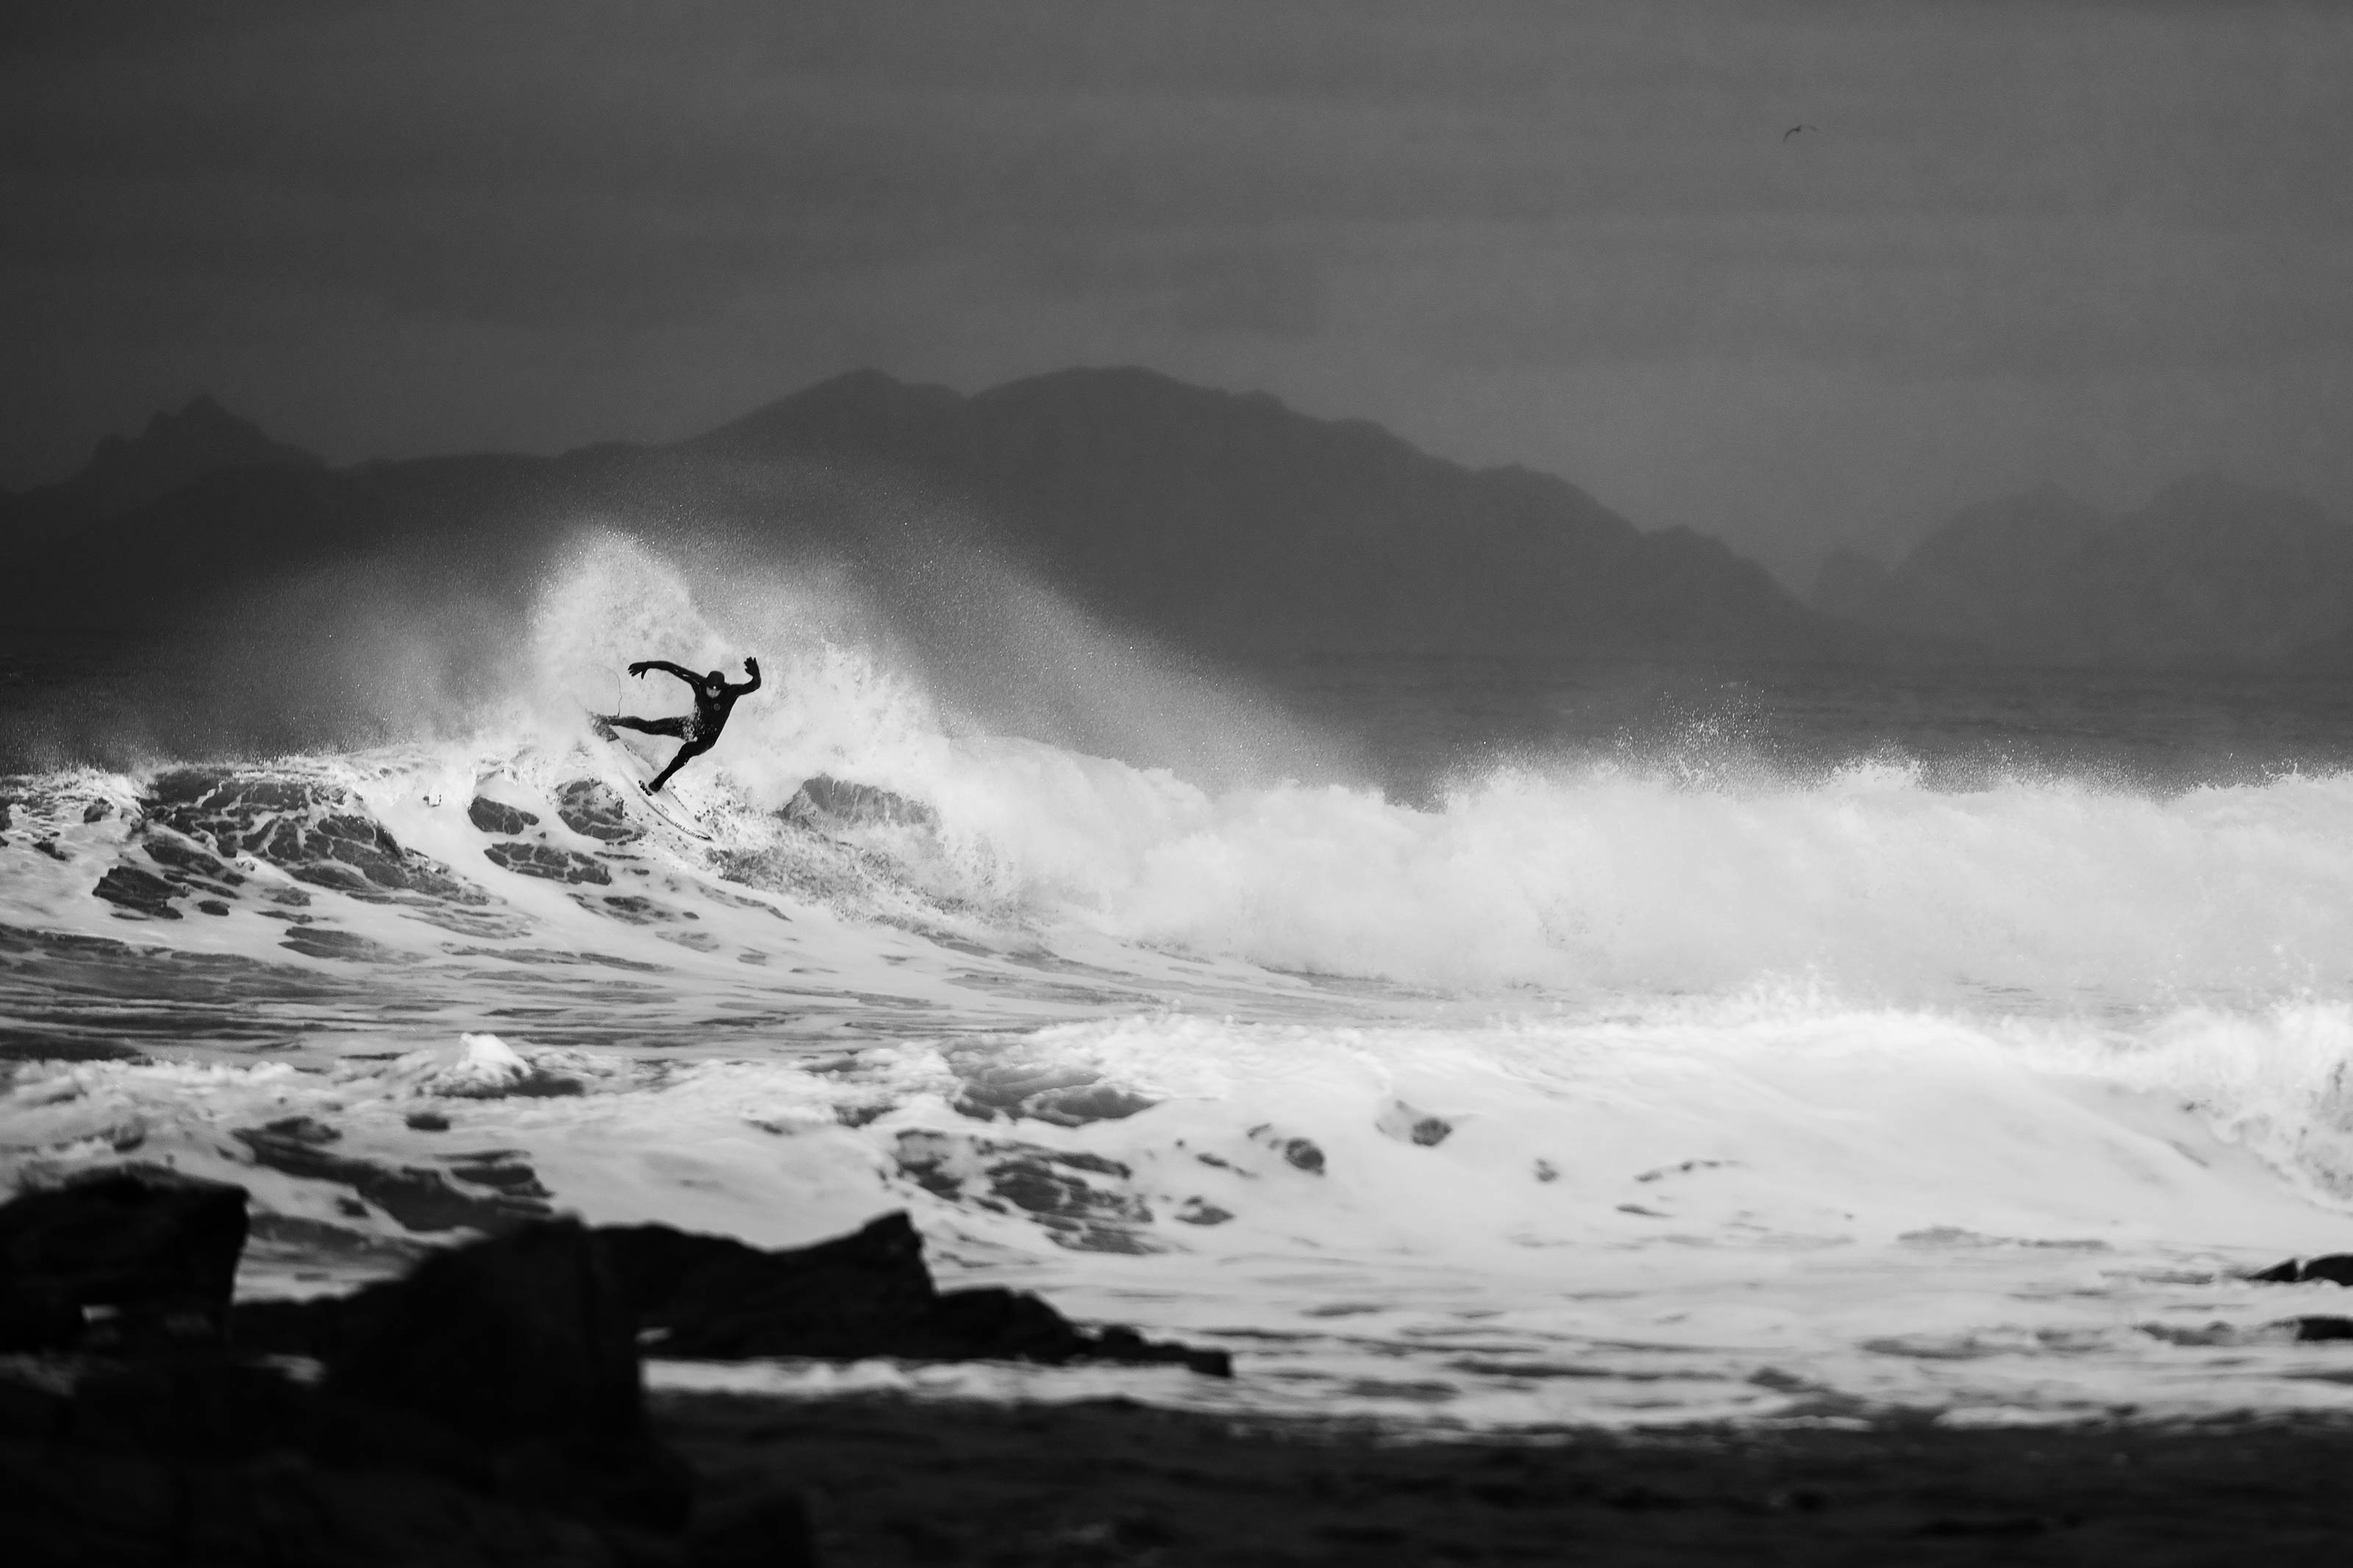 Mick Fanning in den eiskalten Wellen von Norwegen. Credit: Red Bull Content Pool